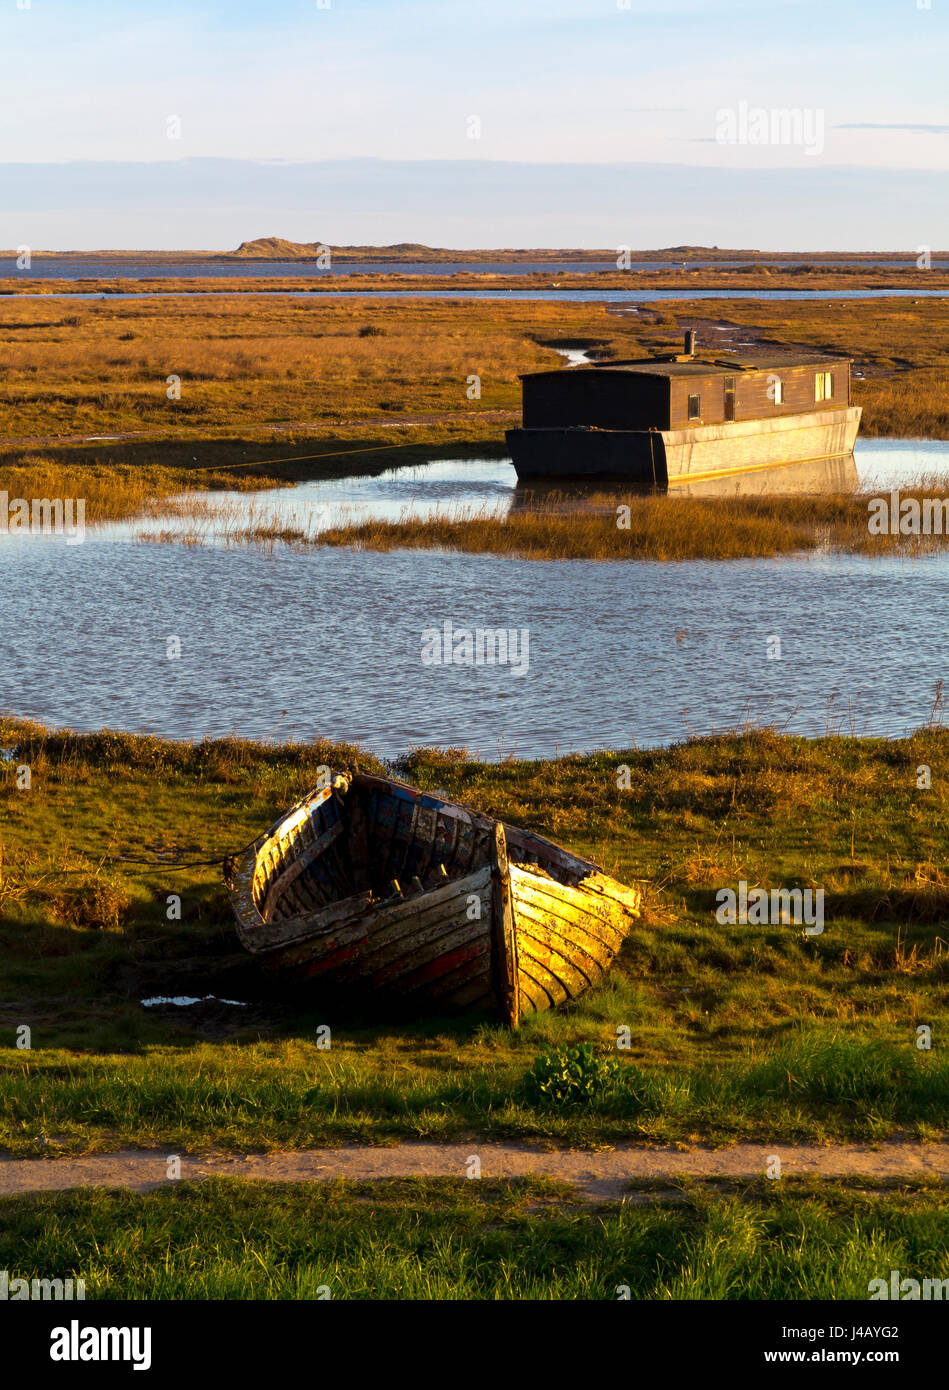 The coastline and saltmarshes at Burnham Deepdale on the North Norfolk coast in England UK Stock Photo